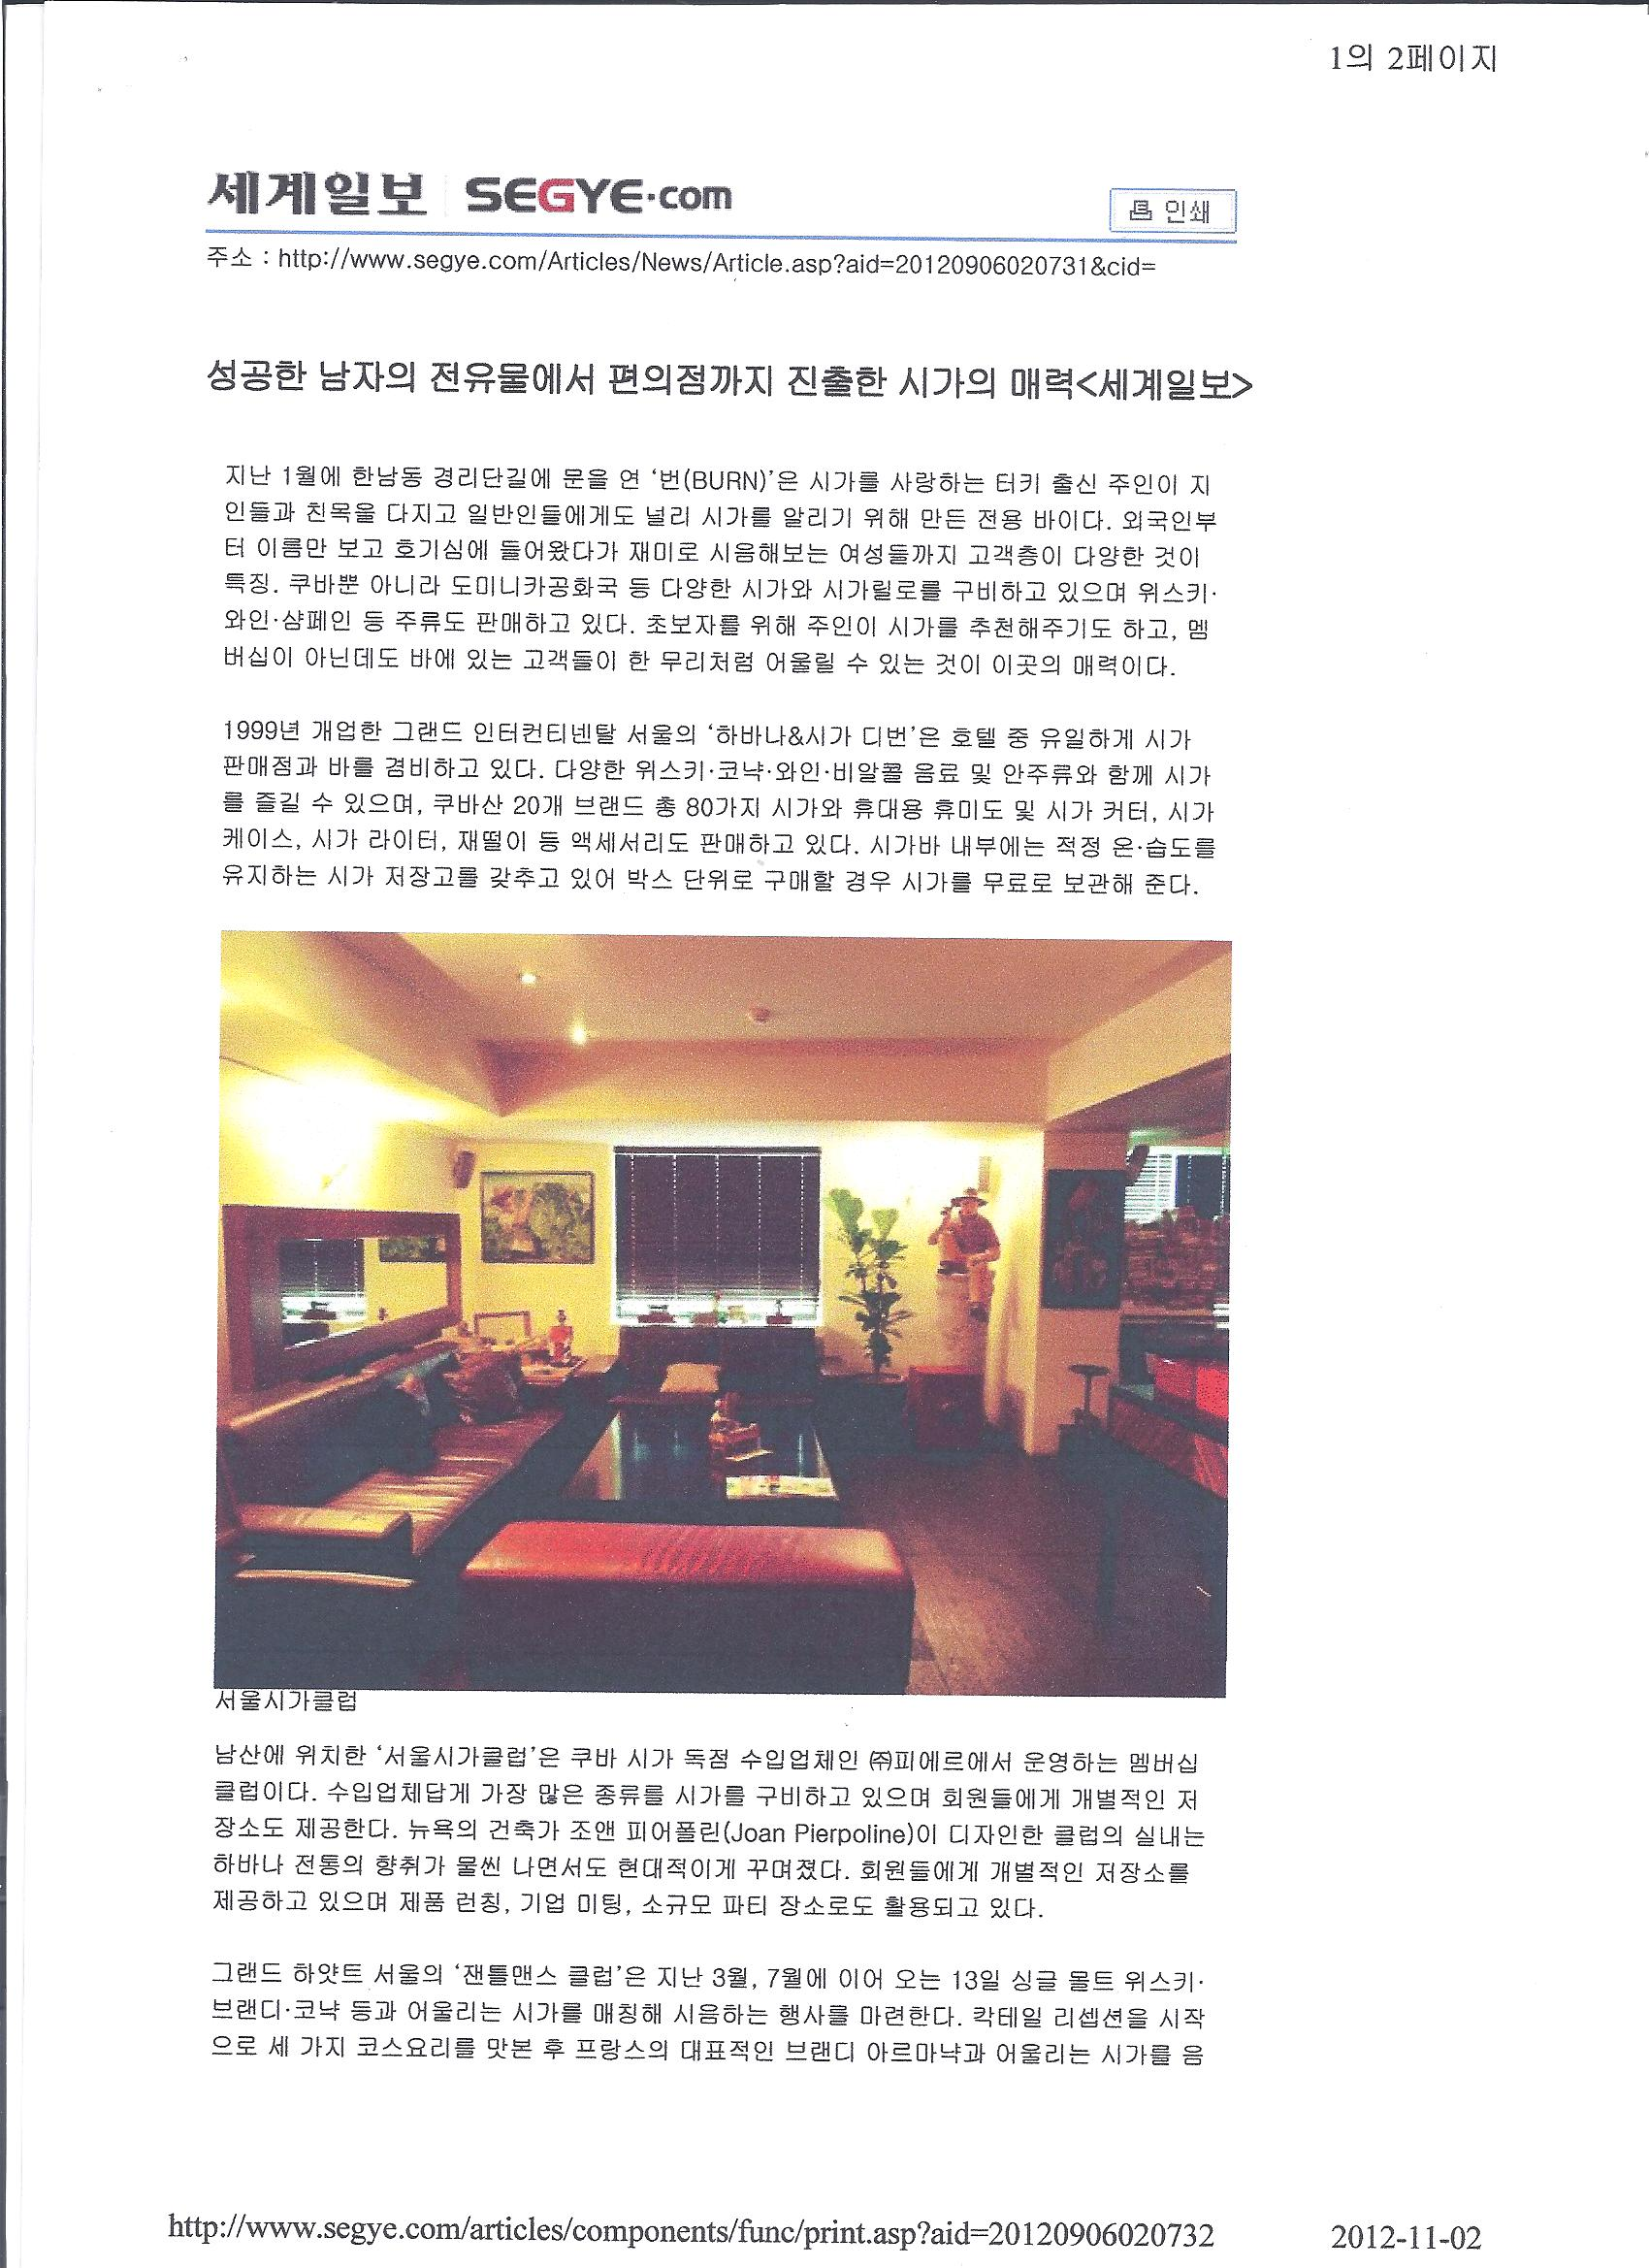 2012-9 Segye article 4.jpg